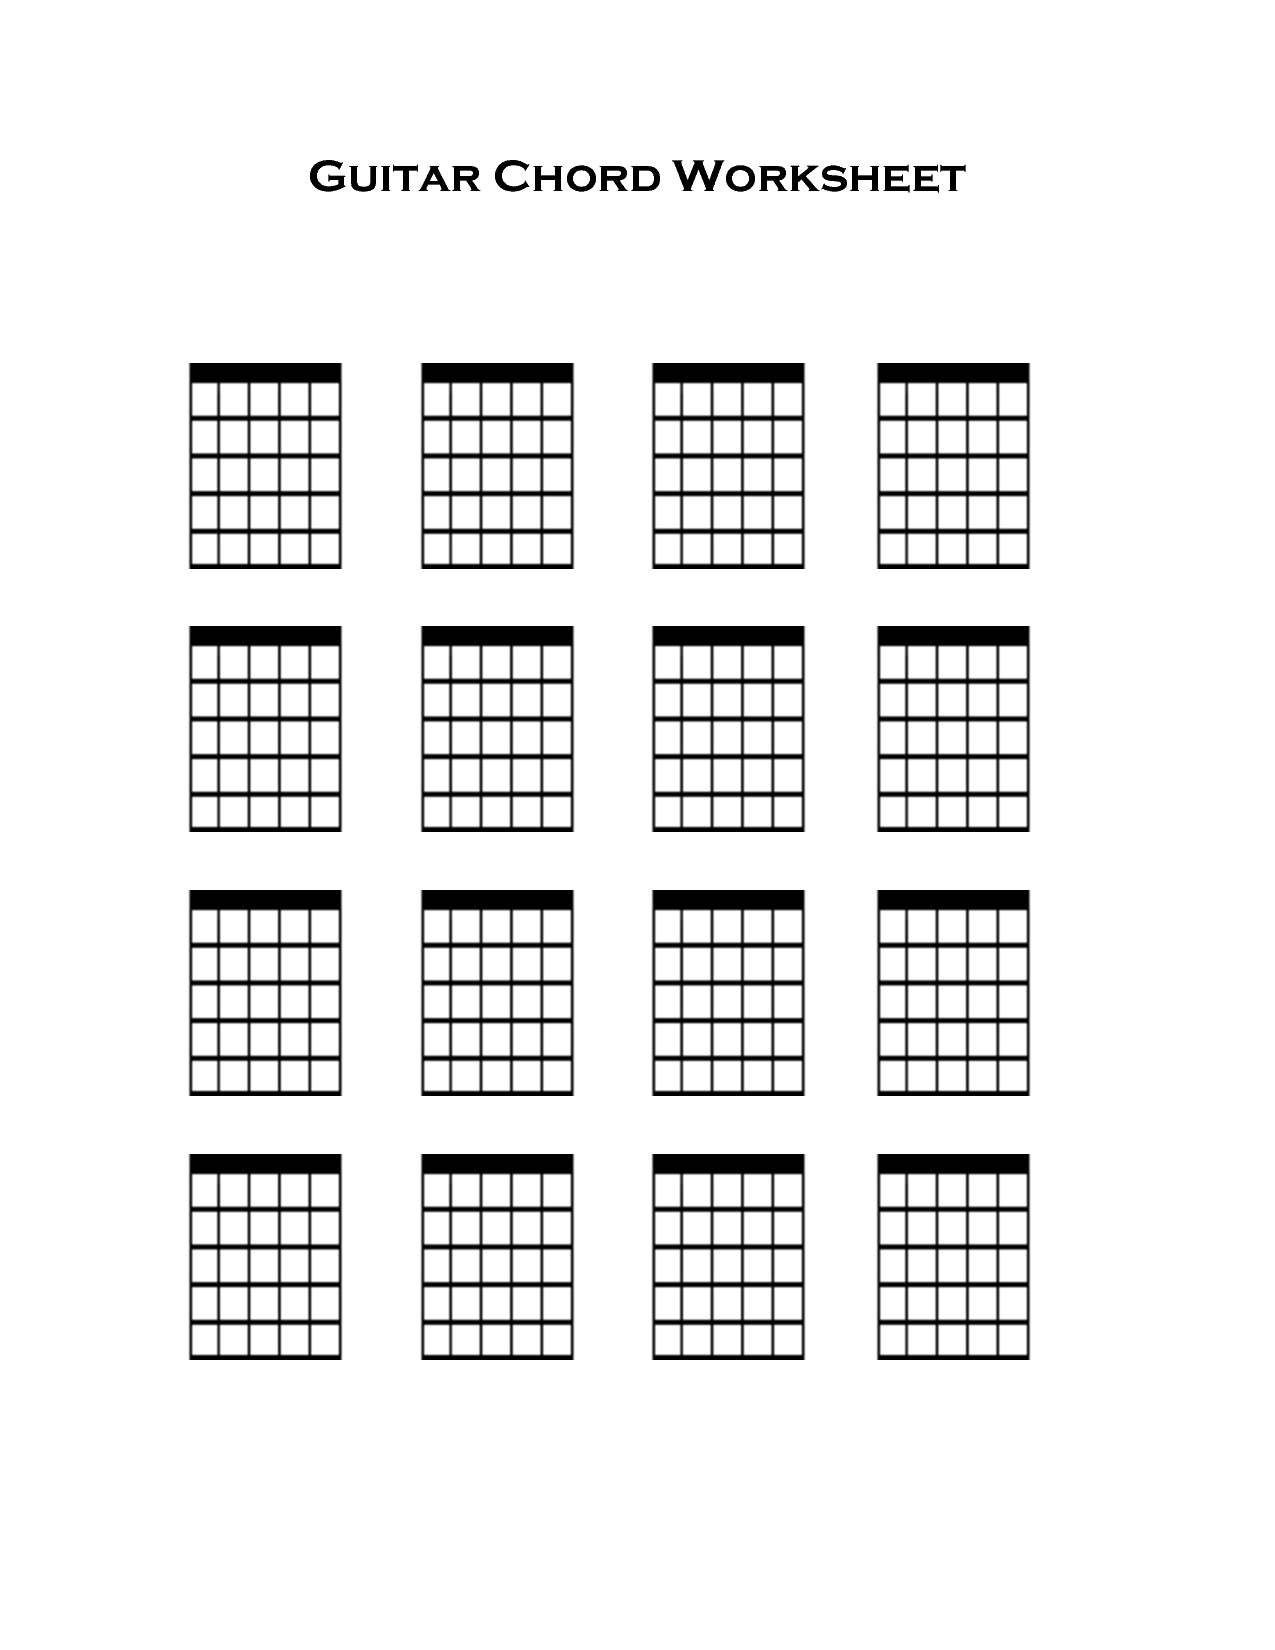 Pin By Laura Isherwood On Learning Guitar